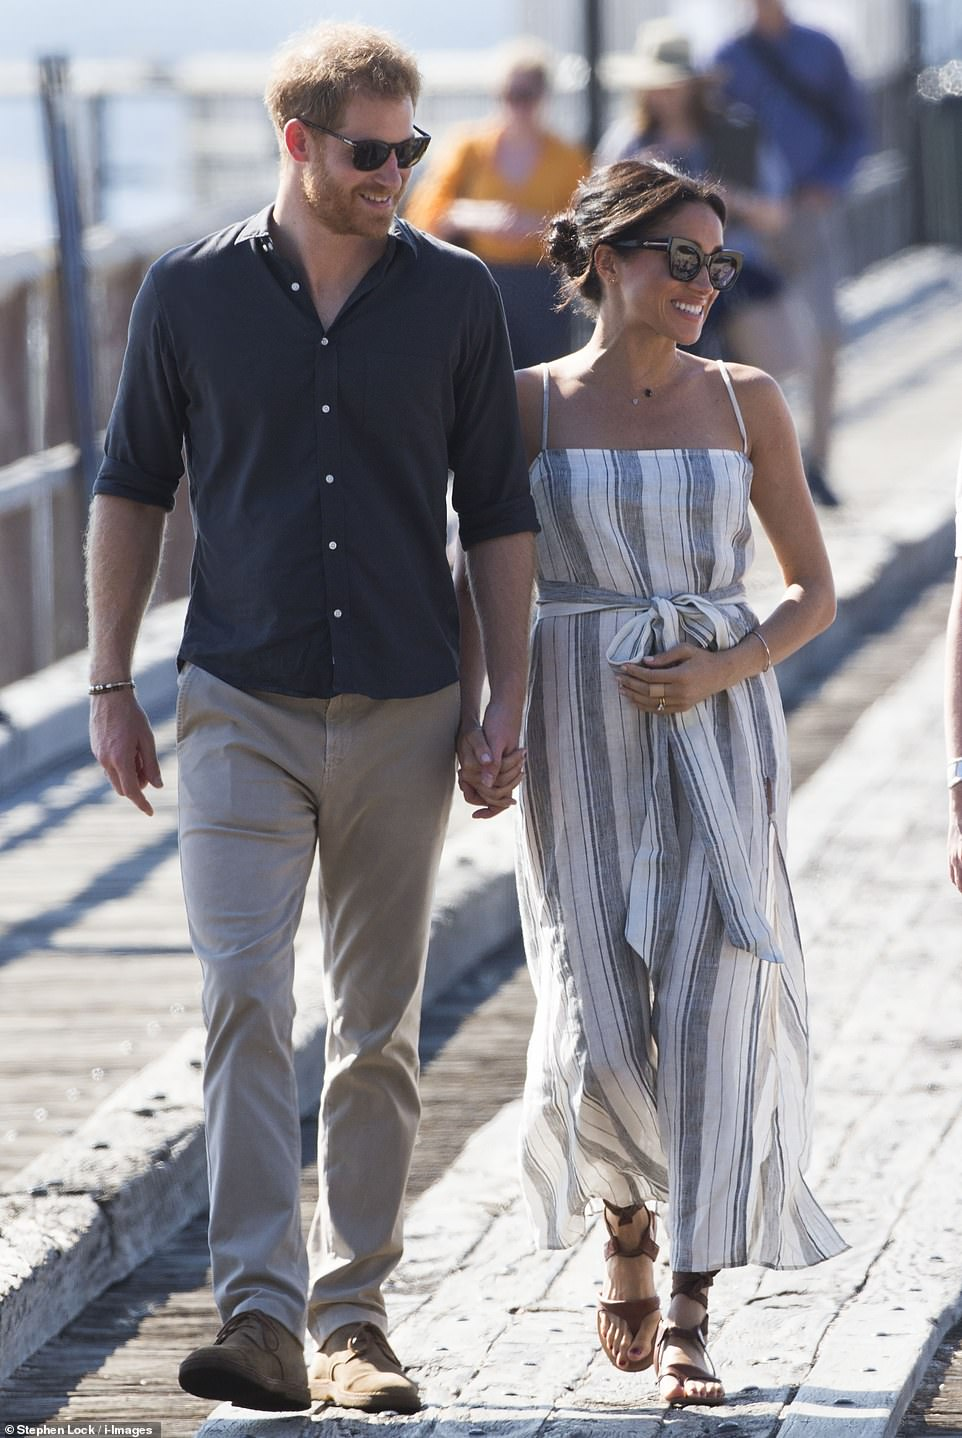 736a0b92fe The Duchess of Sussex in Australia